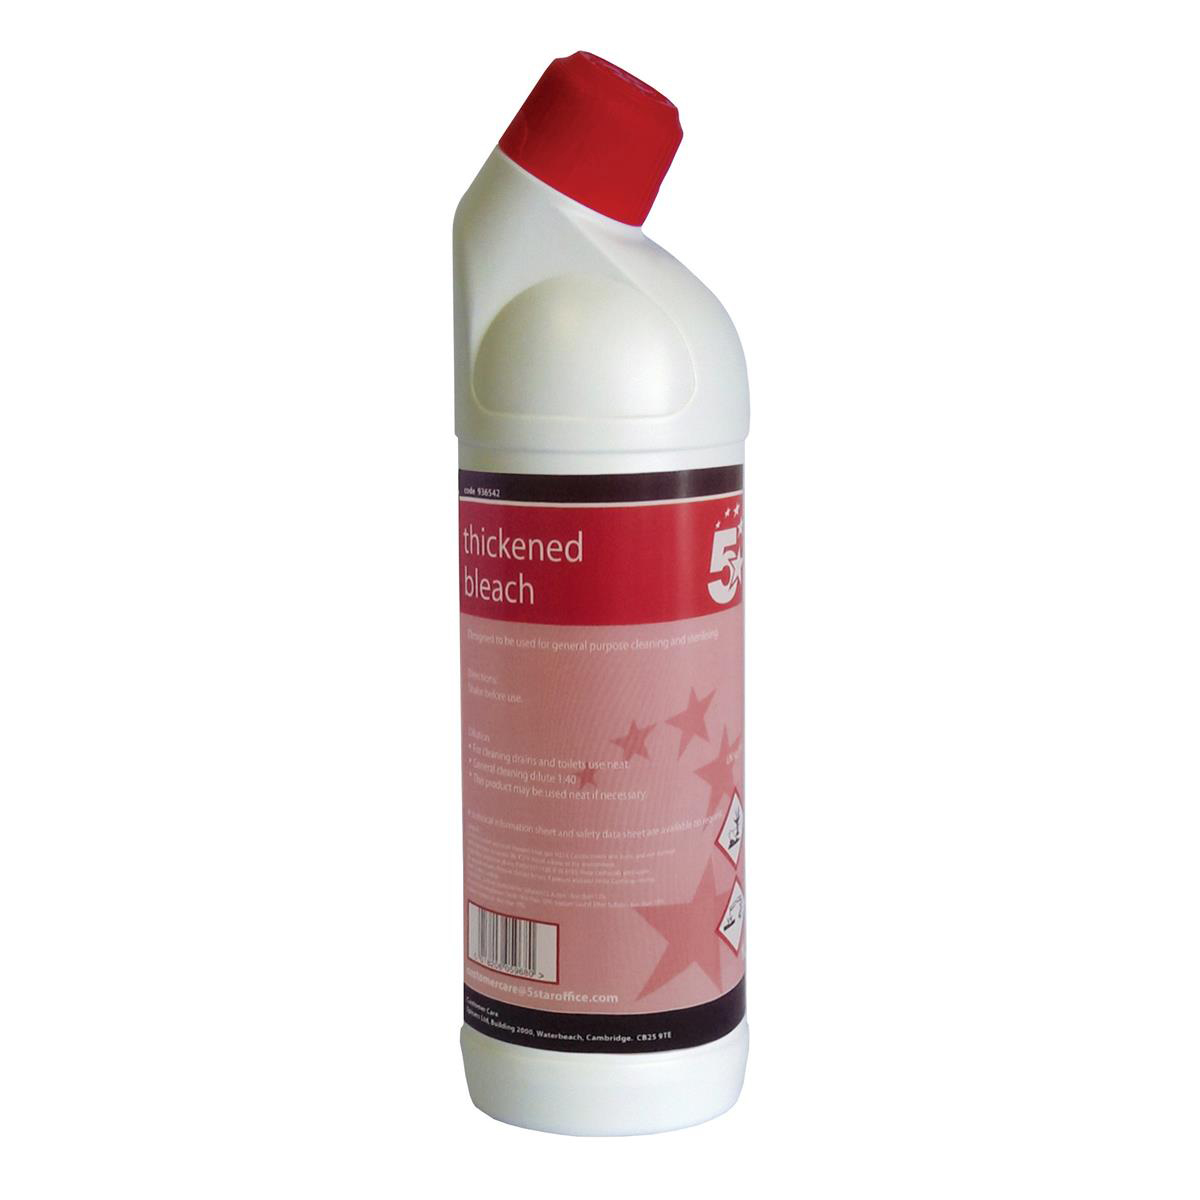 Cleaning Chemicals 5 Star Facilities Thickened Bleach General Purpose Cleaner 1 Litre